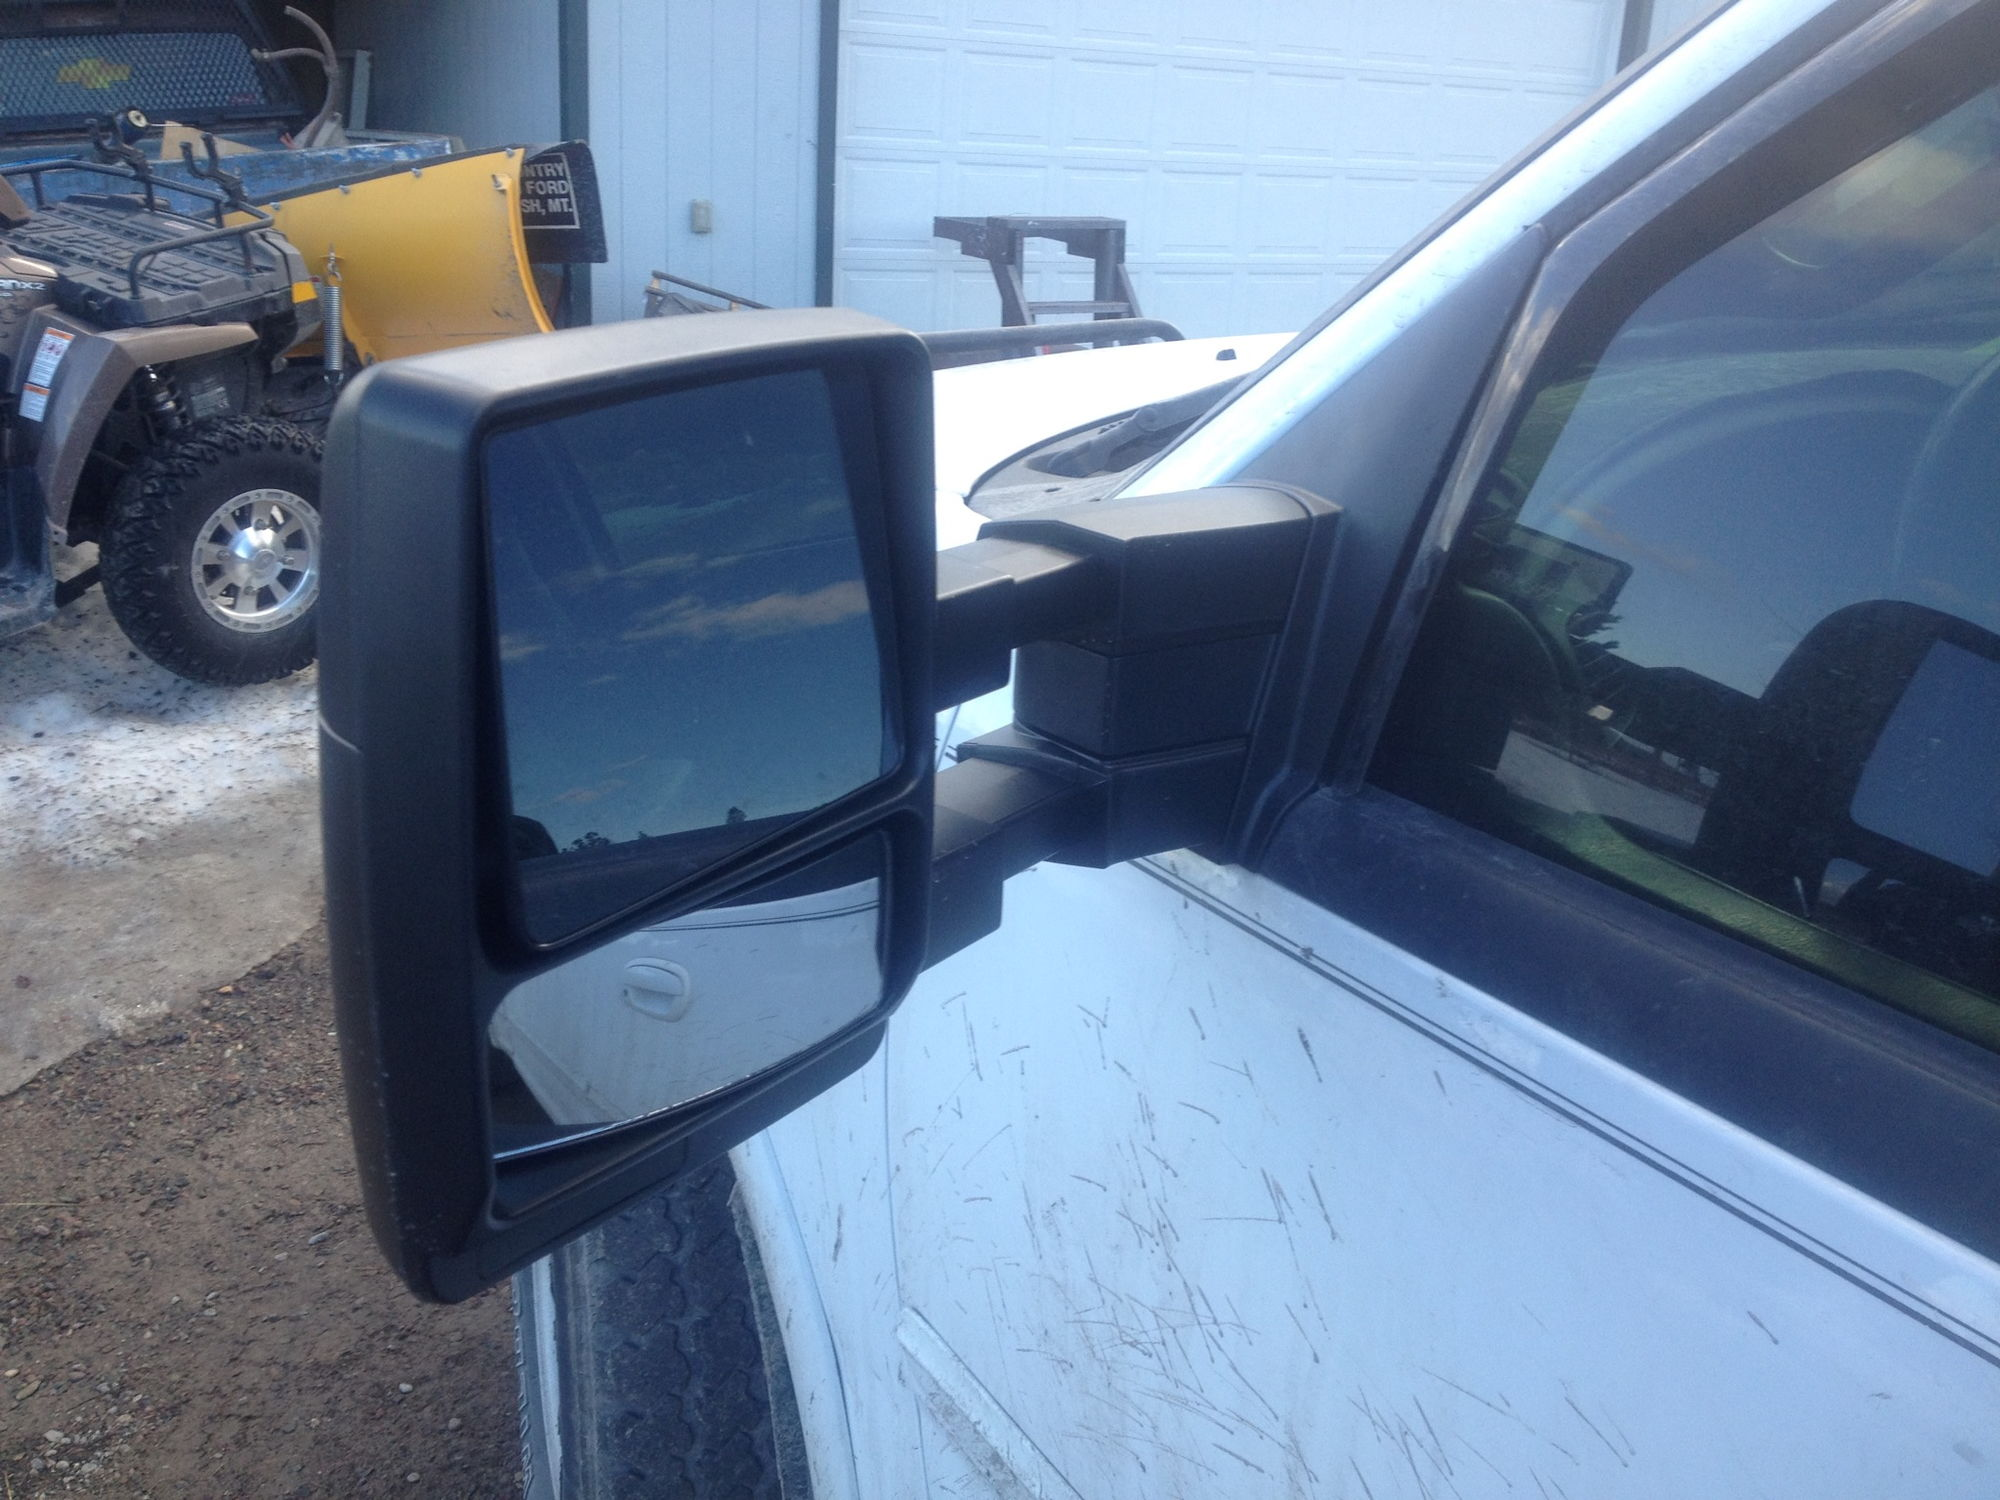 Tow mirror extended out